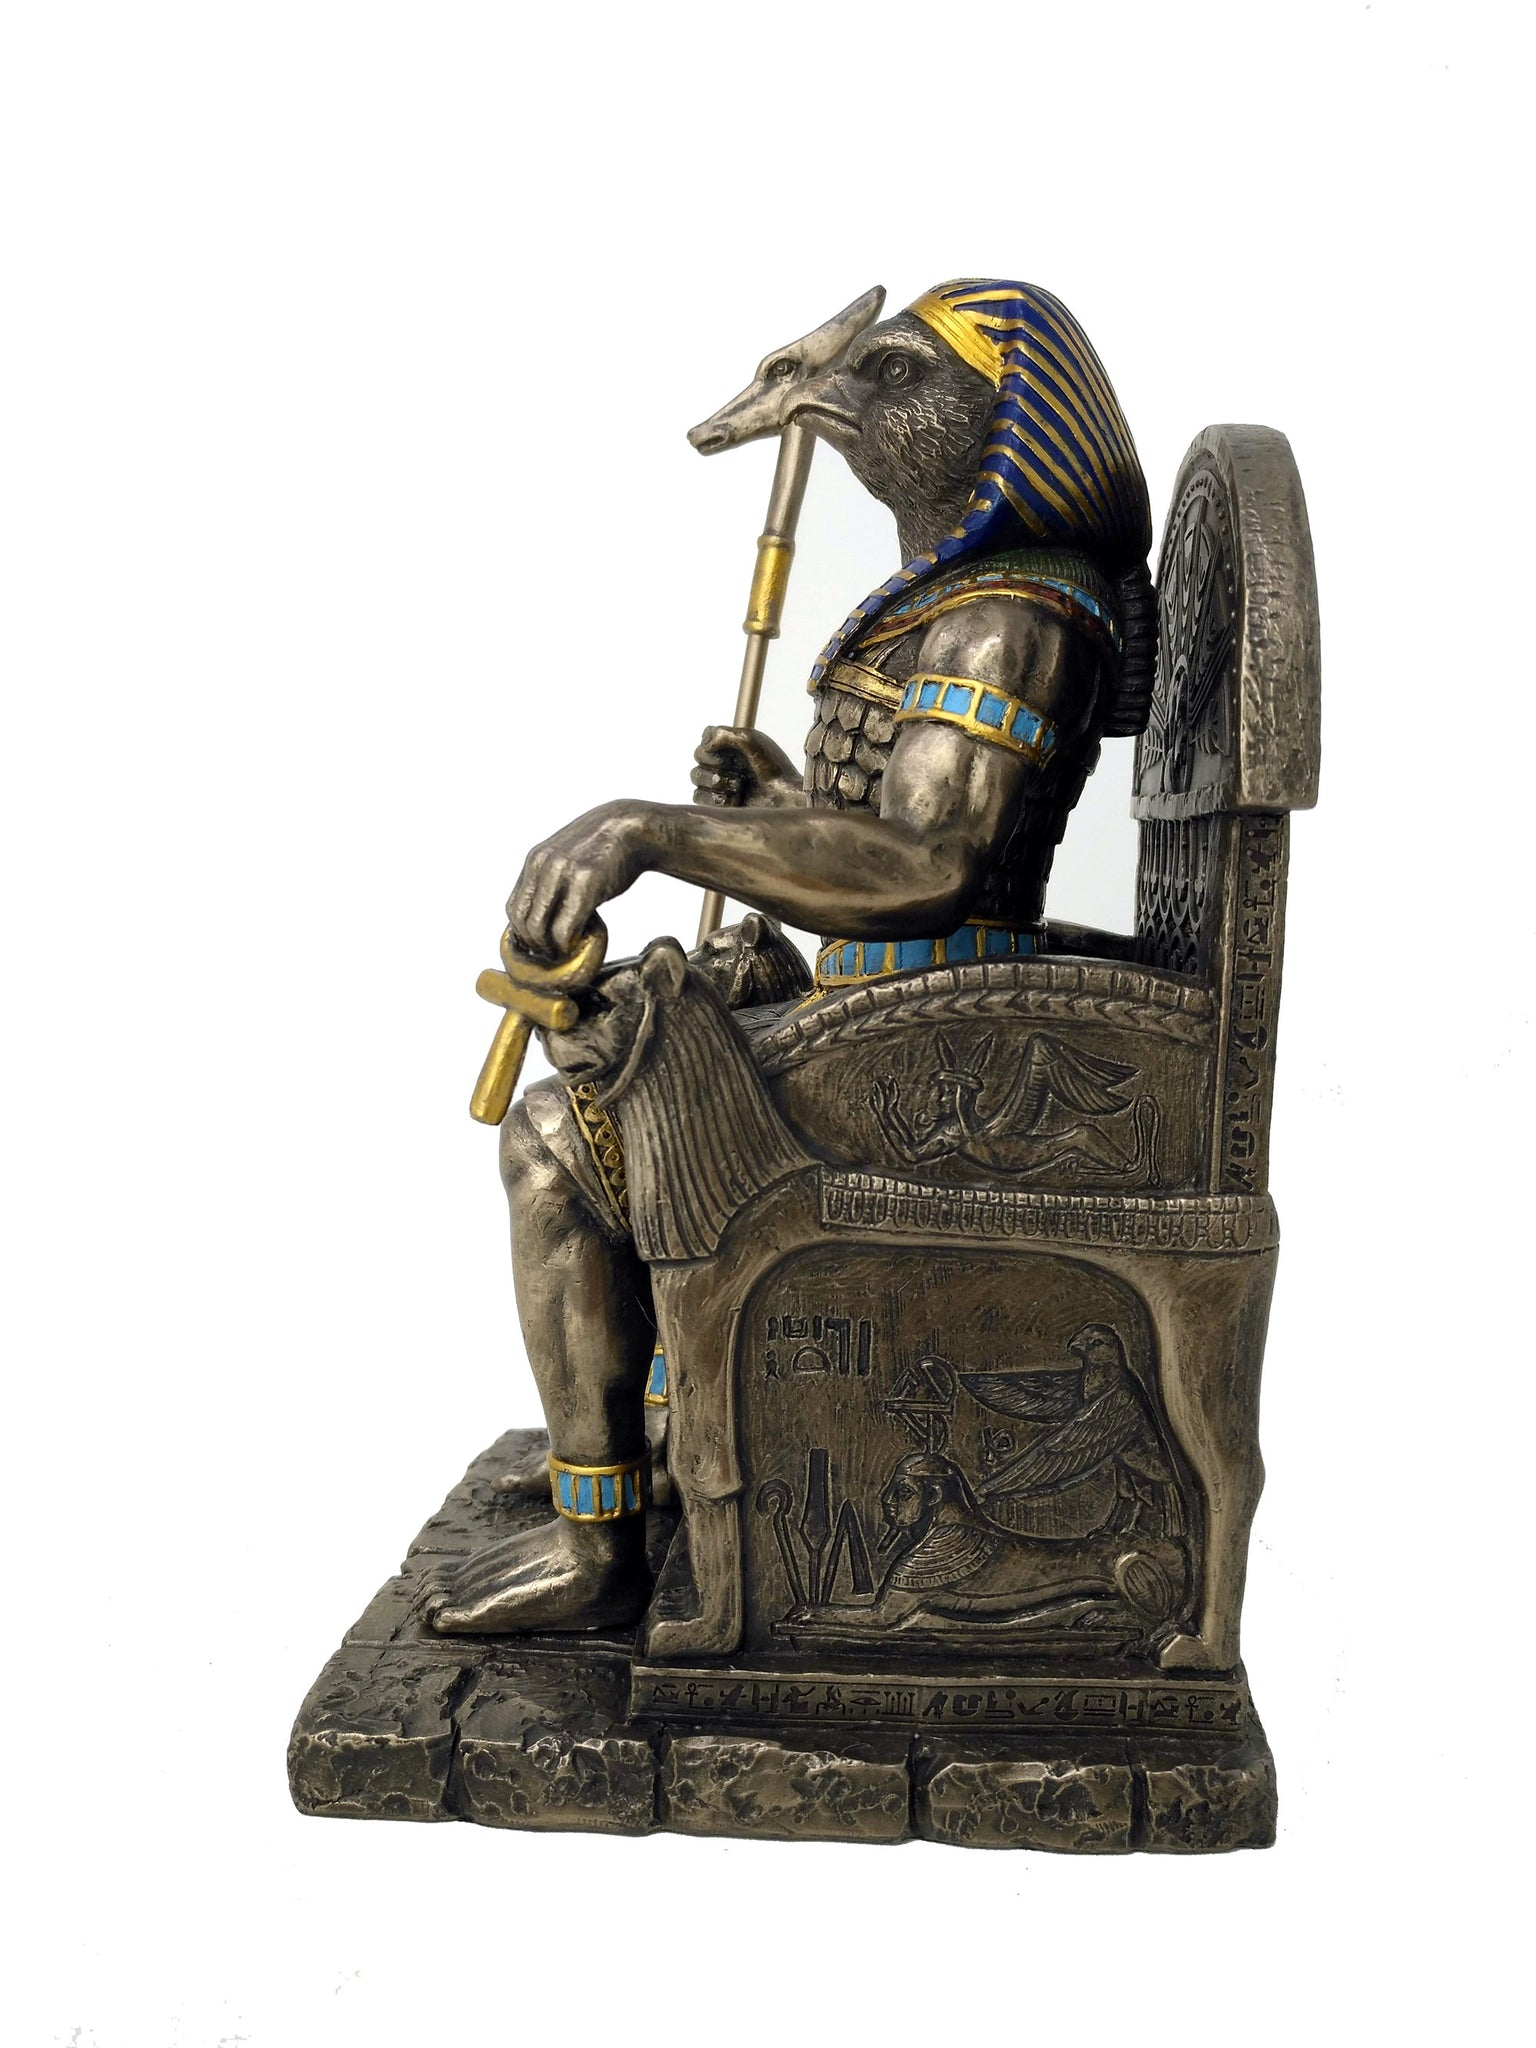 Large Egyptian God Horus Statue - Ancient Egyptian Sky God Horus With Staff in Throne Statue - Cold Cast Bronze - 8.5'' / 21.5cm